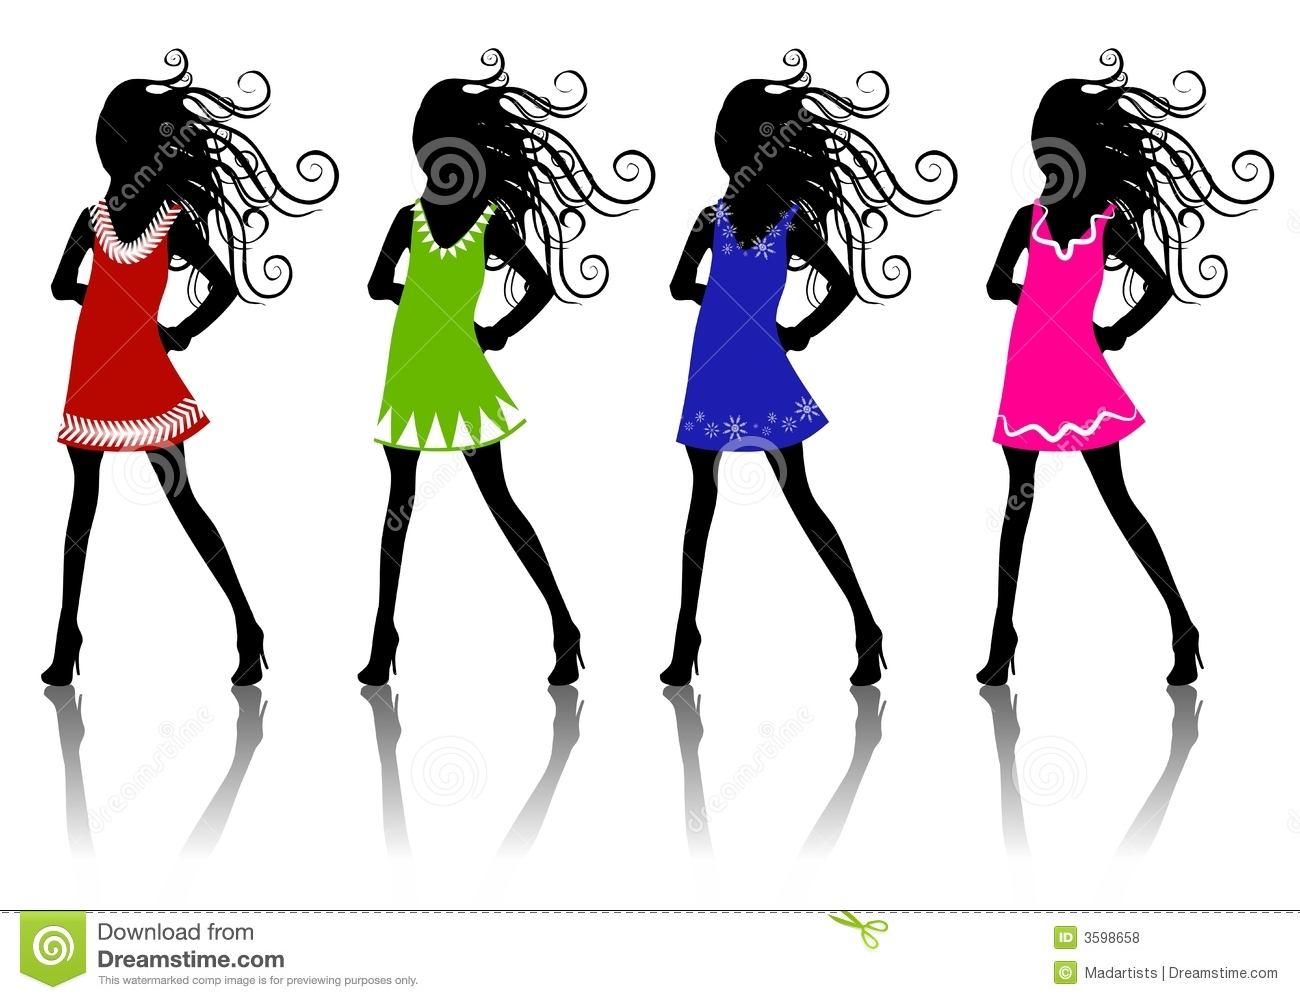 Clip art illustration of 4 winter fashion female silhouettes wearing